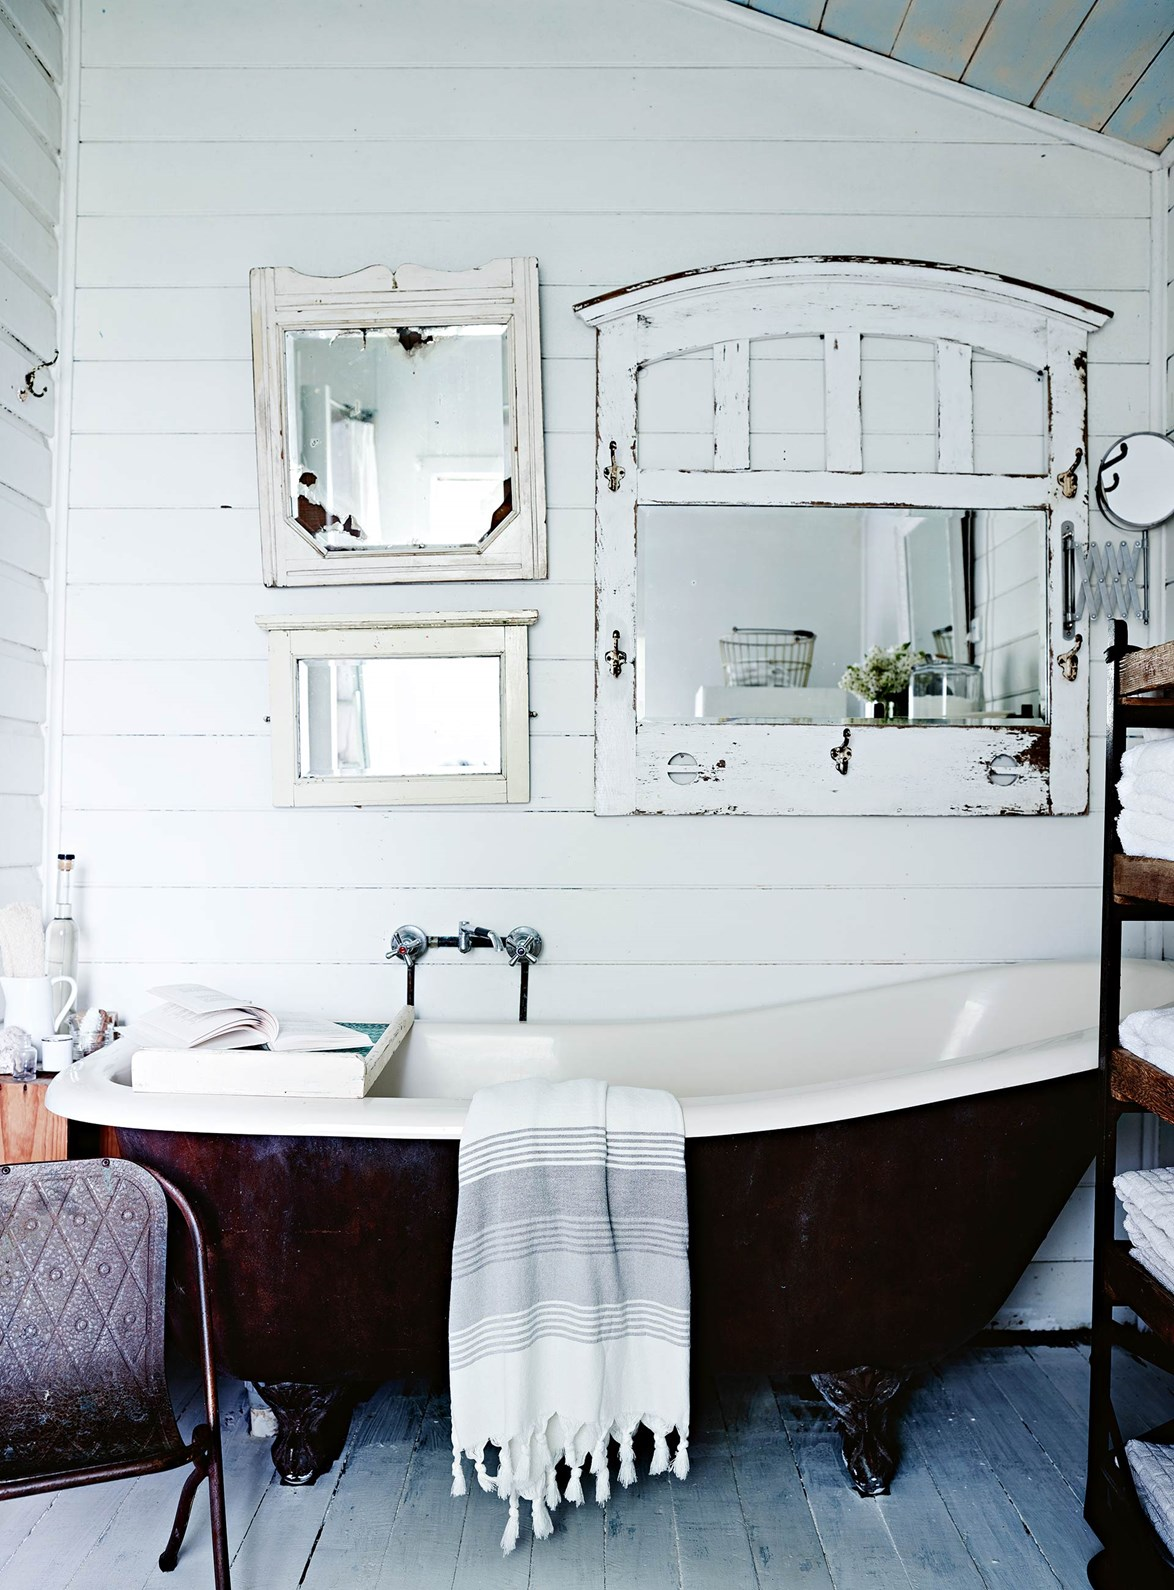 "Upcycled mirrors and vintage furniture in the bathroom of a [dressmakers cottage in Byron Bay](https://www.homestolove.com.au/dressmakers-white-vintage-interior-in-the-byron-bay-hinterland-13719|target=""_blank"") evoke a sense of bohemian country chic. *Photo: Mark Roper / Story: Country Style*"